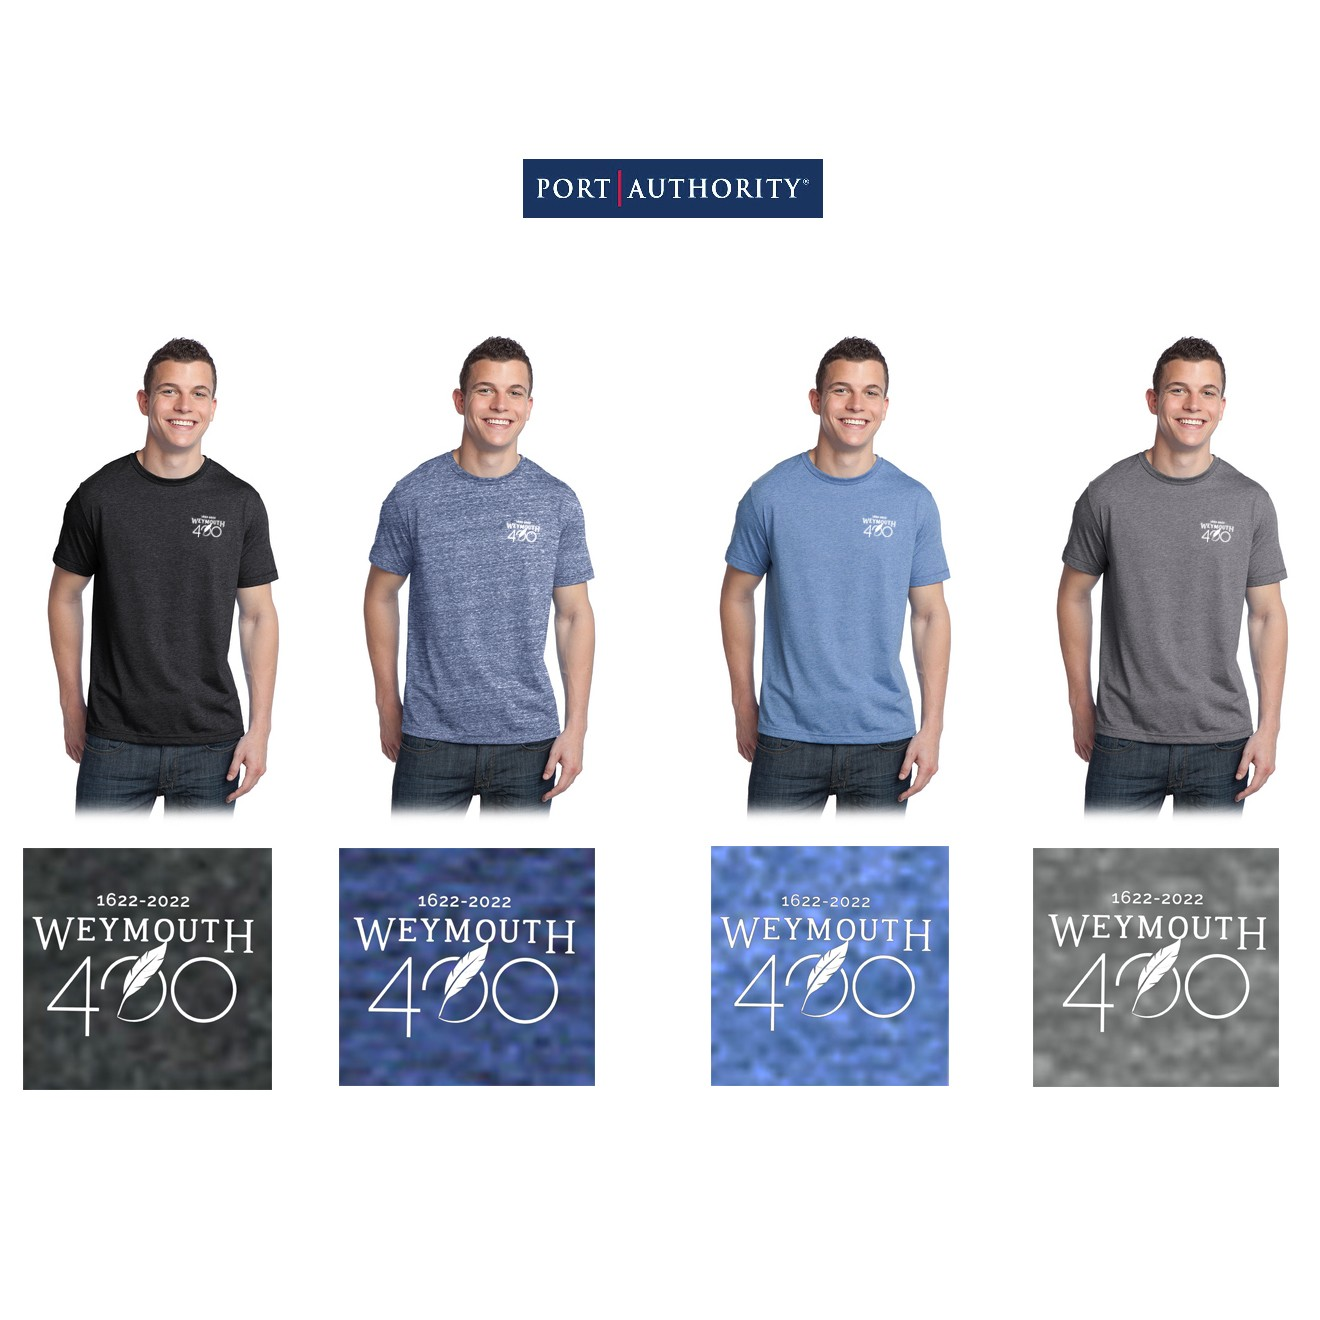 Weymouth 400 Port Authority District® Young Mens Tri-Blend Crewneck Tee